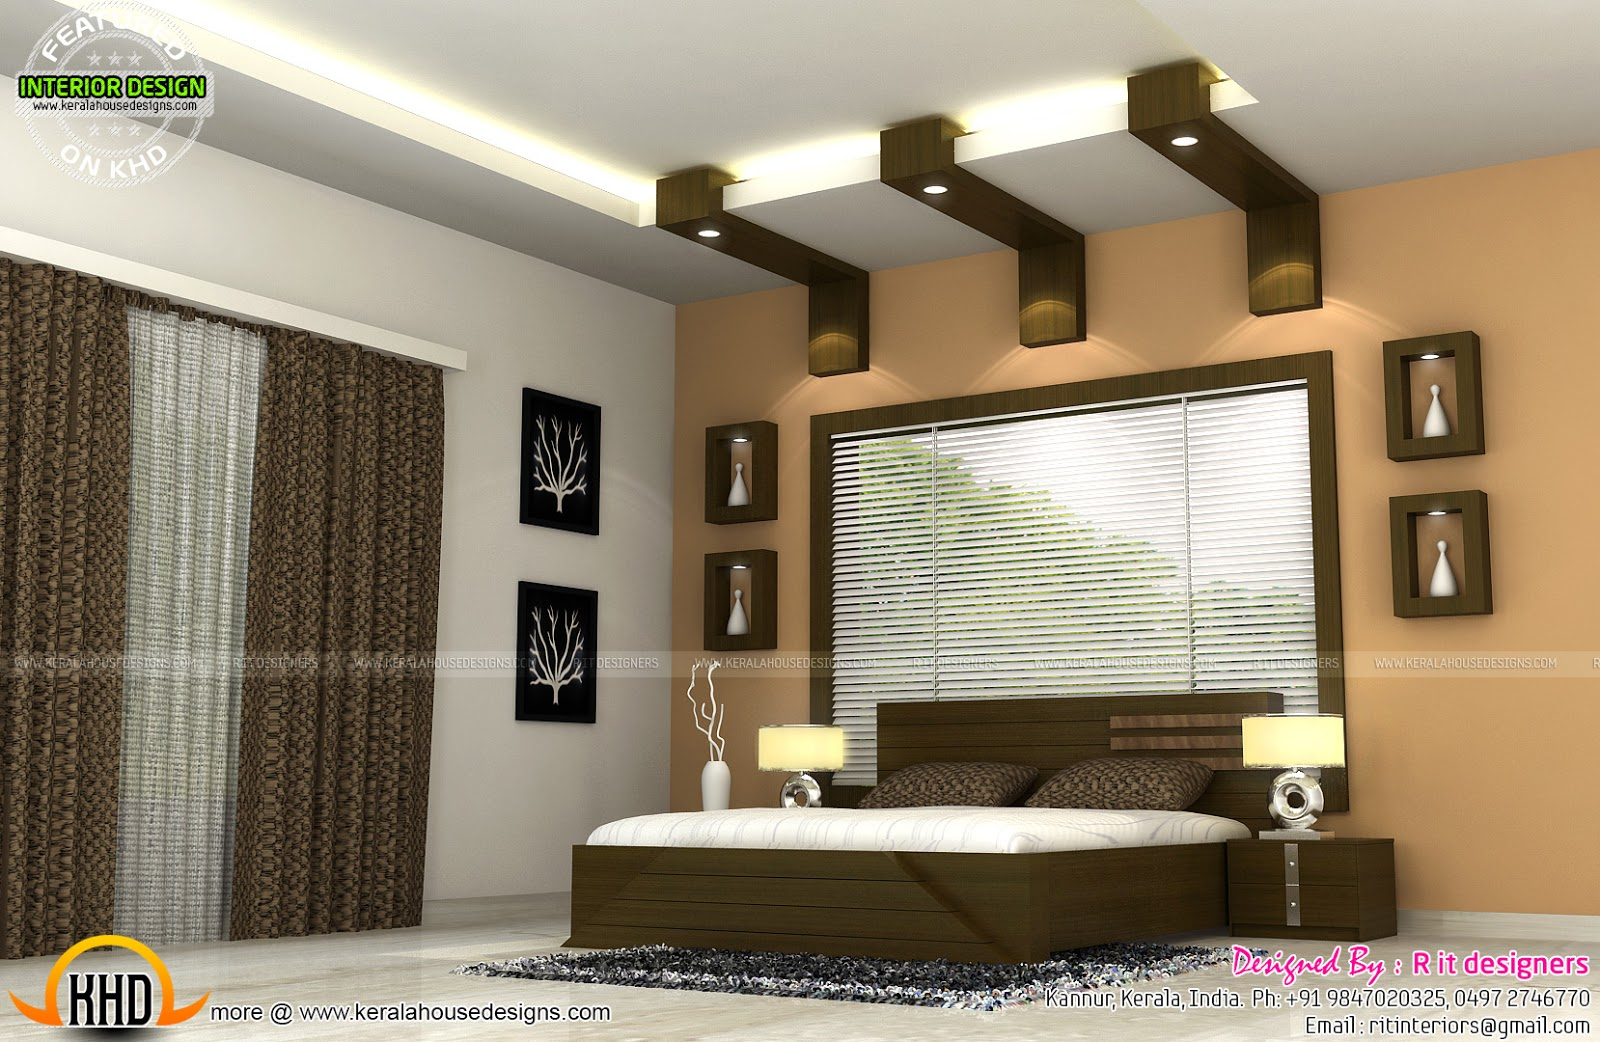 Interiors of bedrooms and kitchen kerala home design and for House design inside